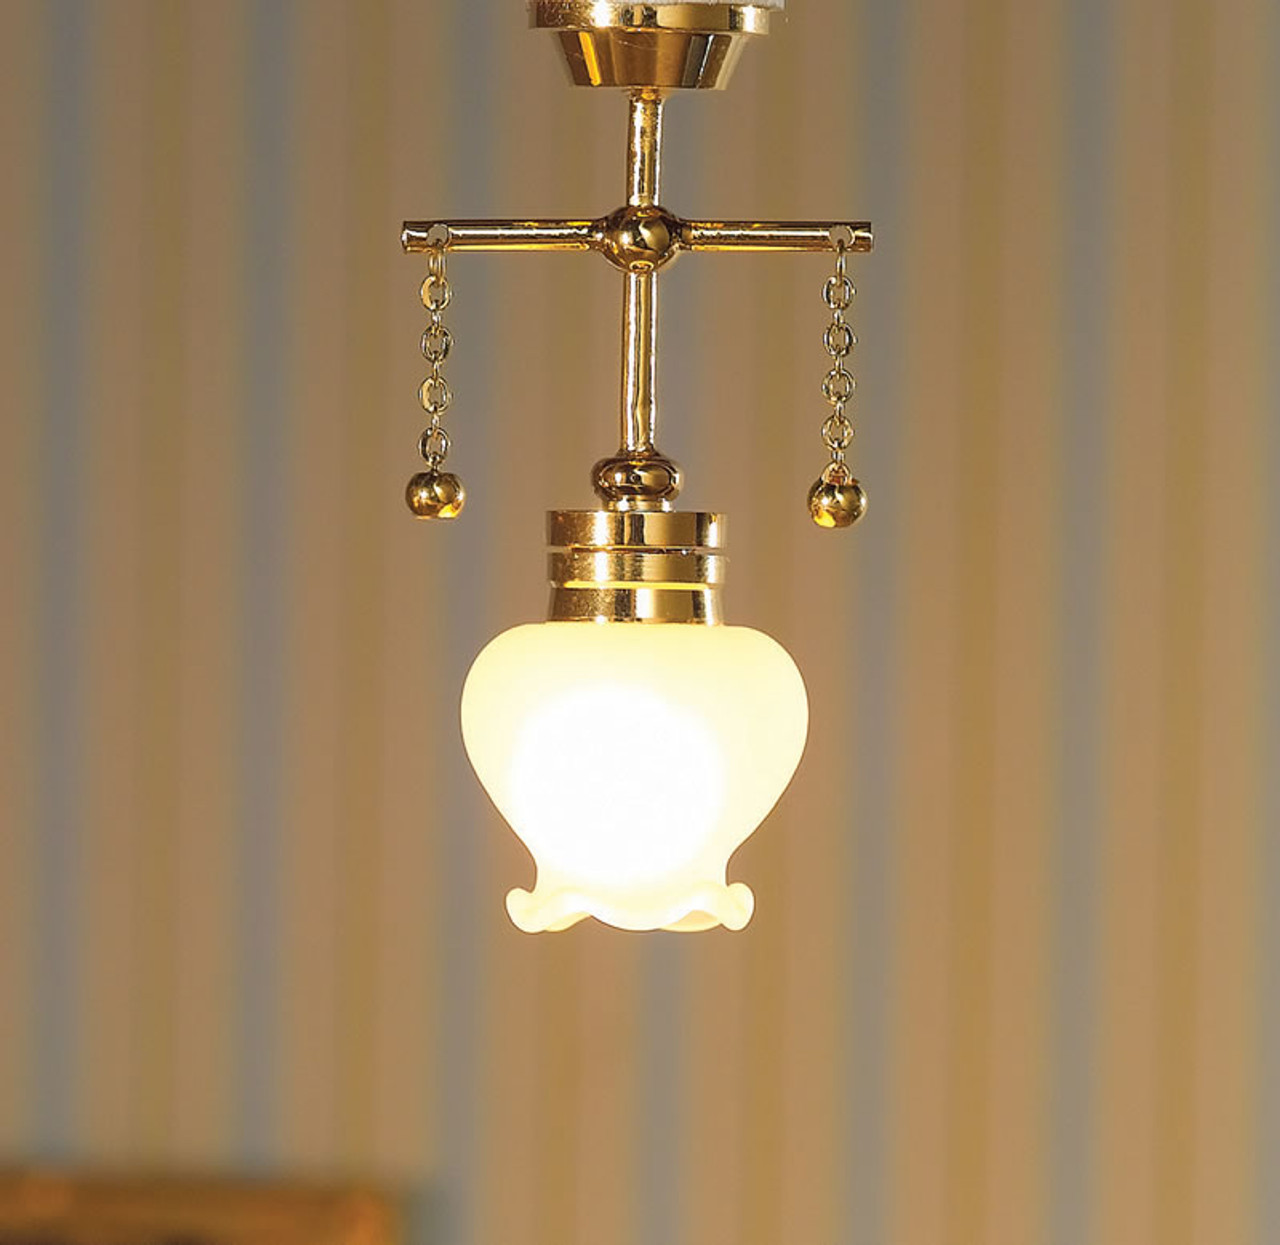 Hanging Light with Shaped Shade 7200